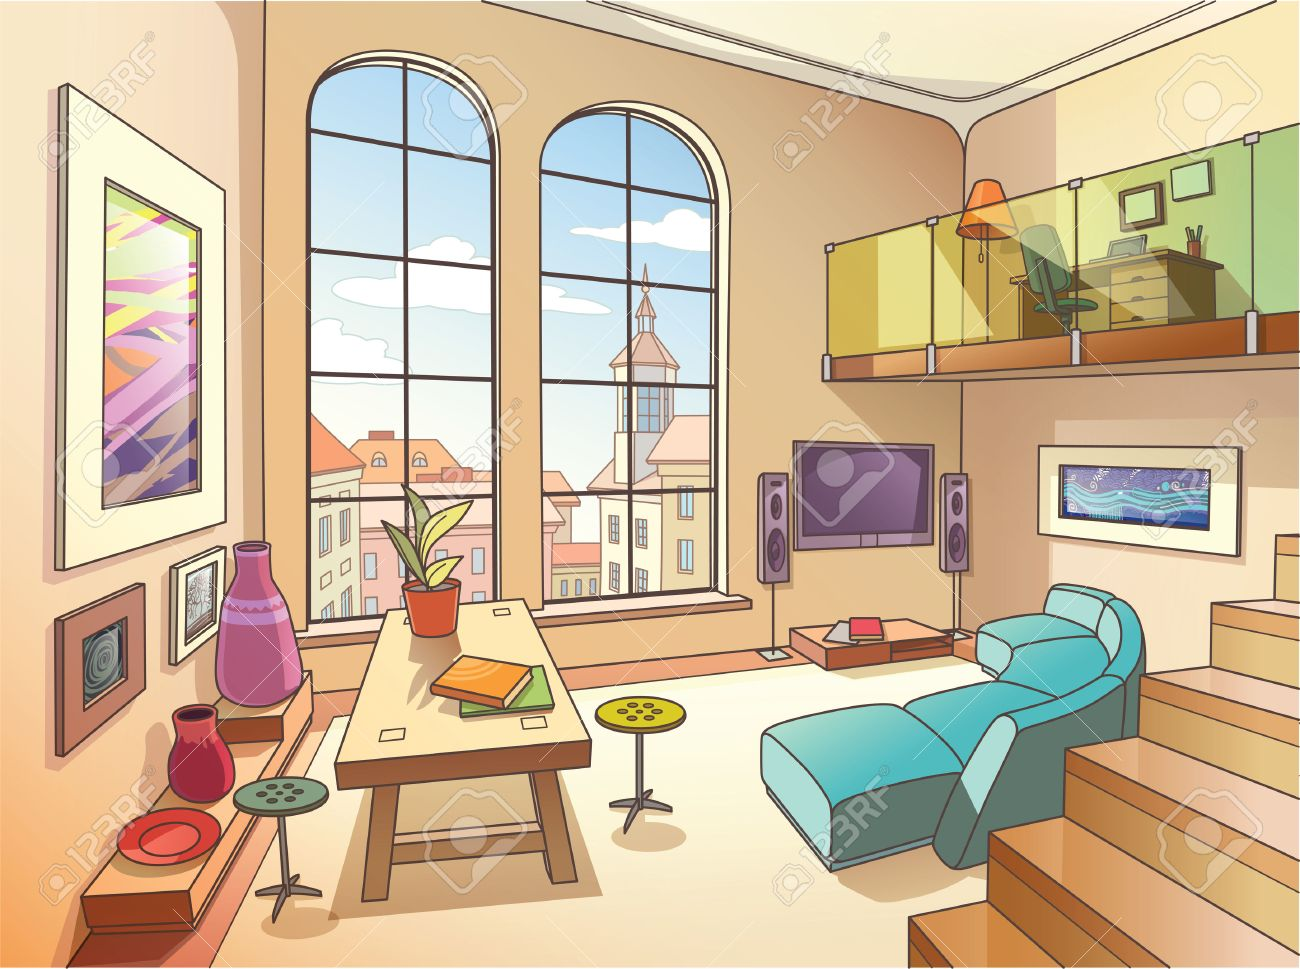 the light interior of a two storied cozy living room is full the light interior of a two storied cozy living room is full of paintings and